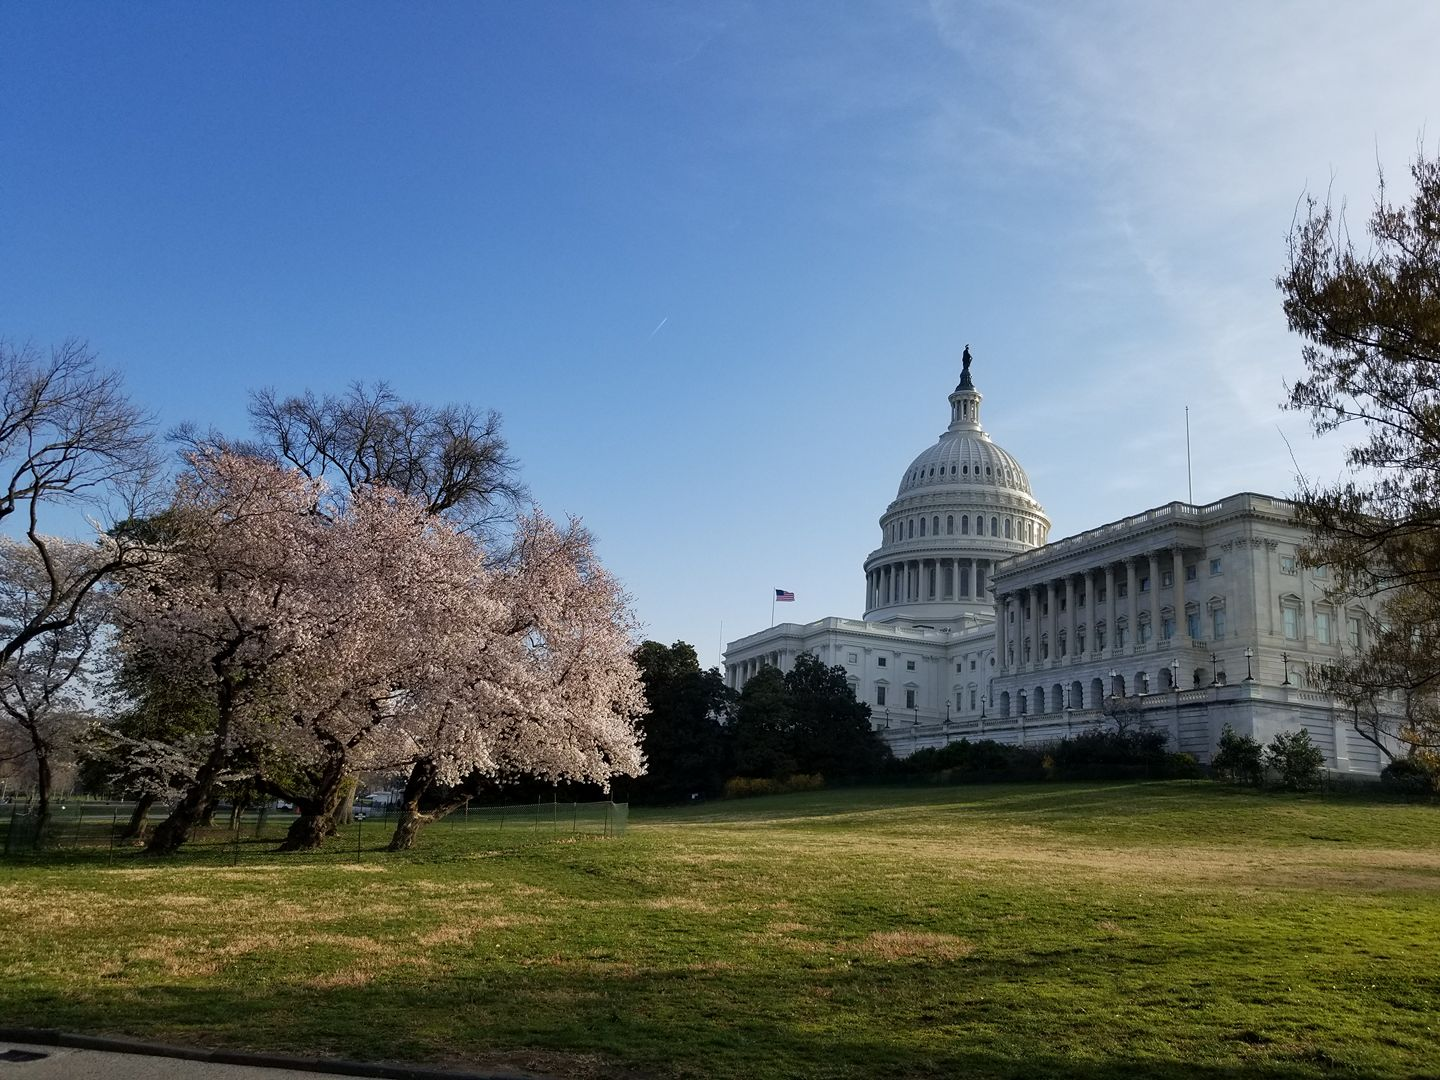 capitol and cherry blossoms